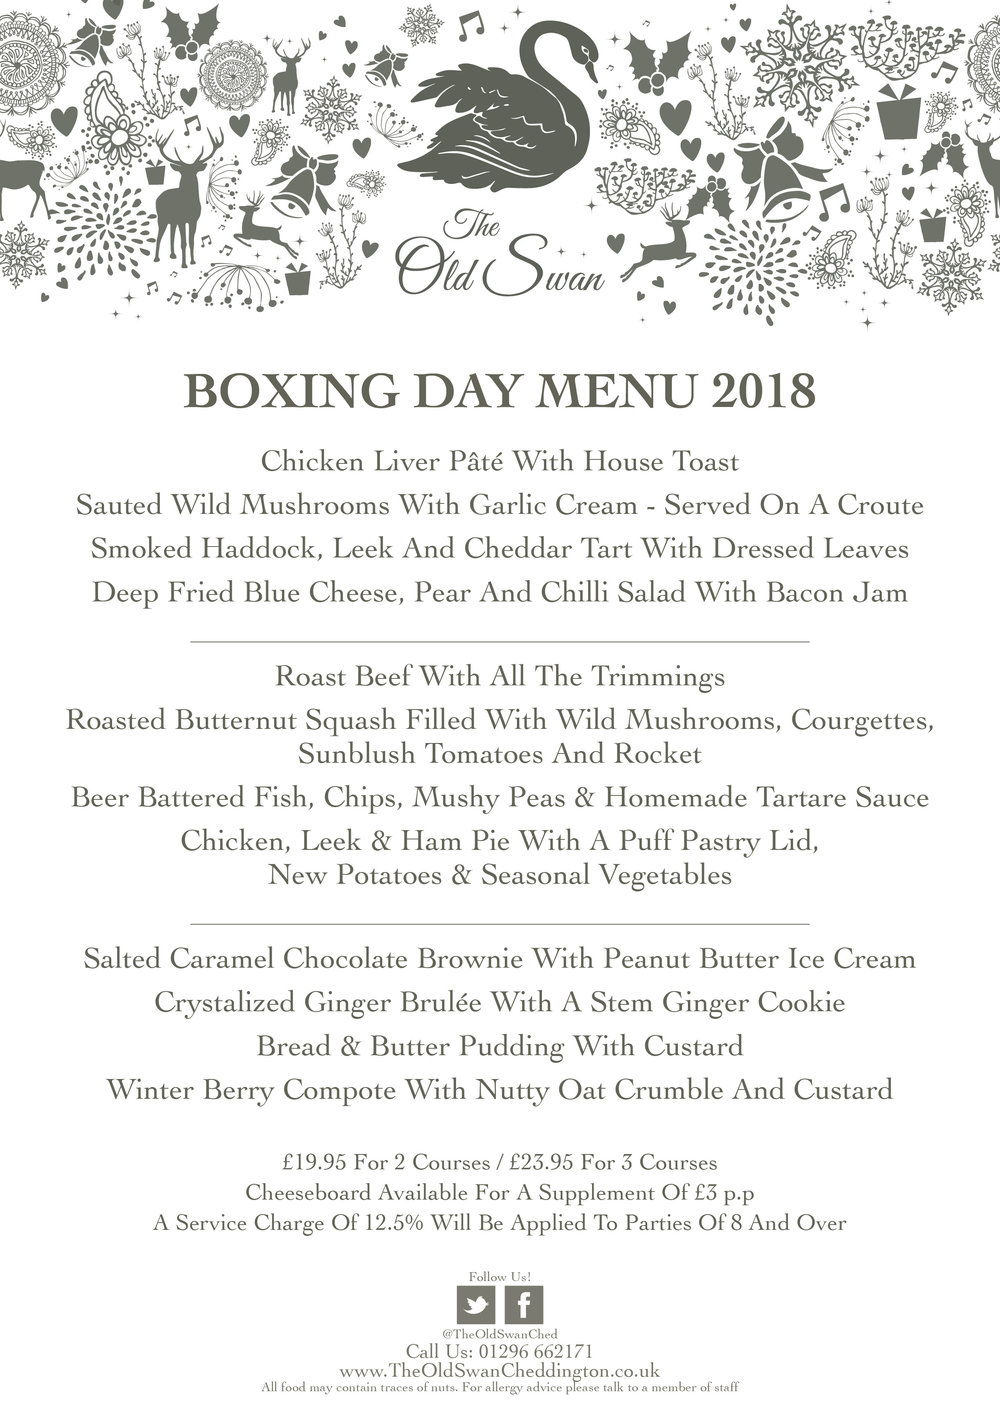 The Old Swan Cheddington Boxing Day Menu